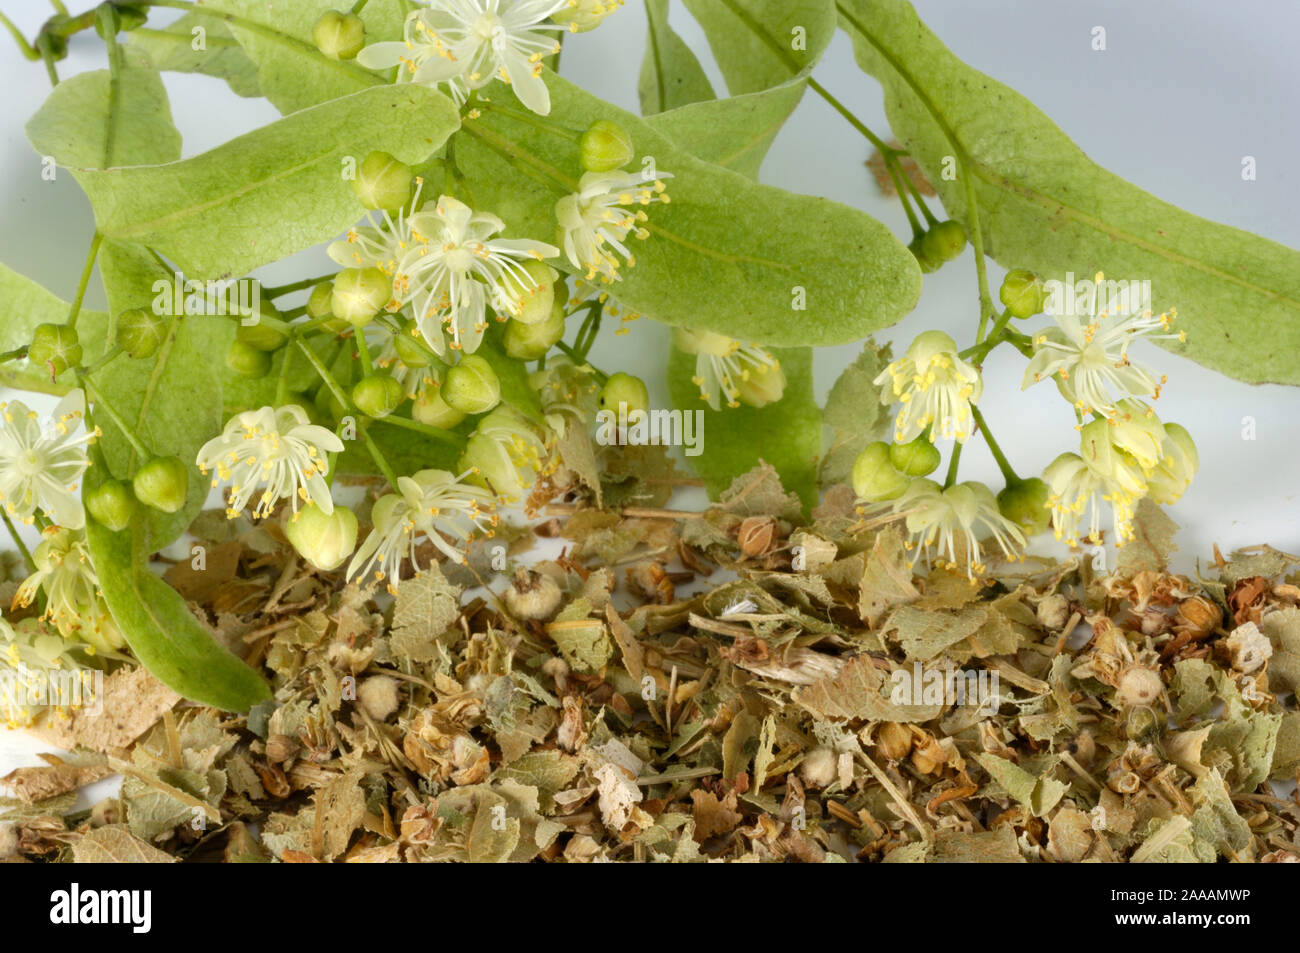 Lime, dried blooms / (Tilia tomentosa) | Sommerlinde, getrocknete Blueten / (Tilia tomentosa) / Stock Photo